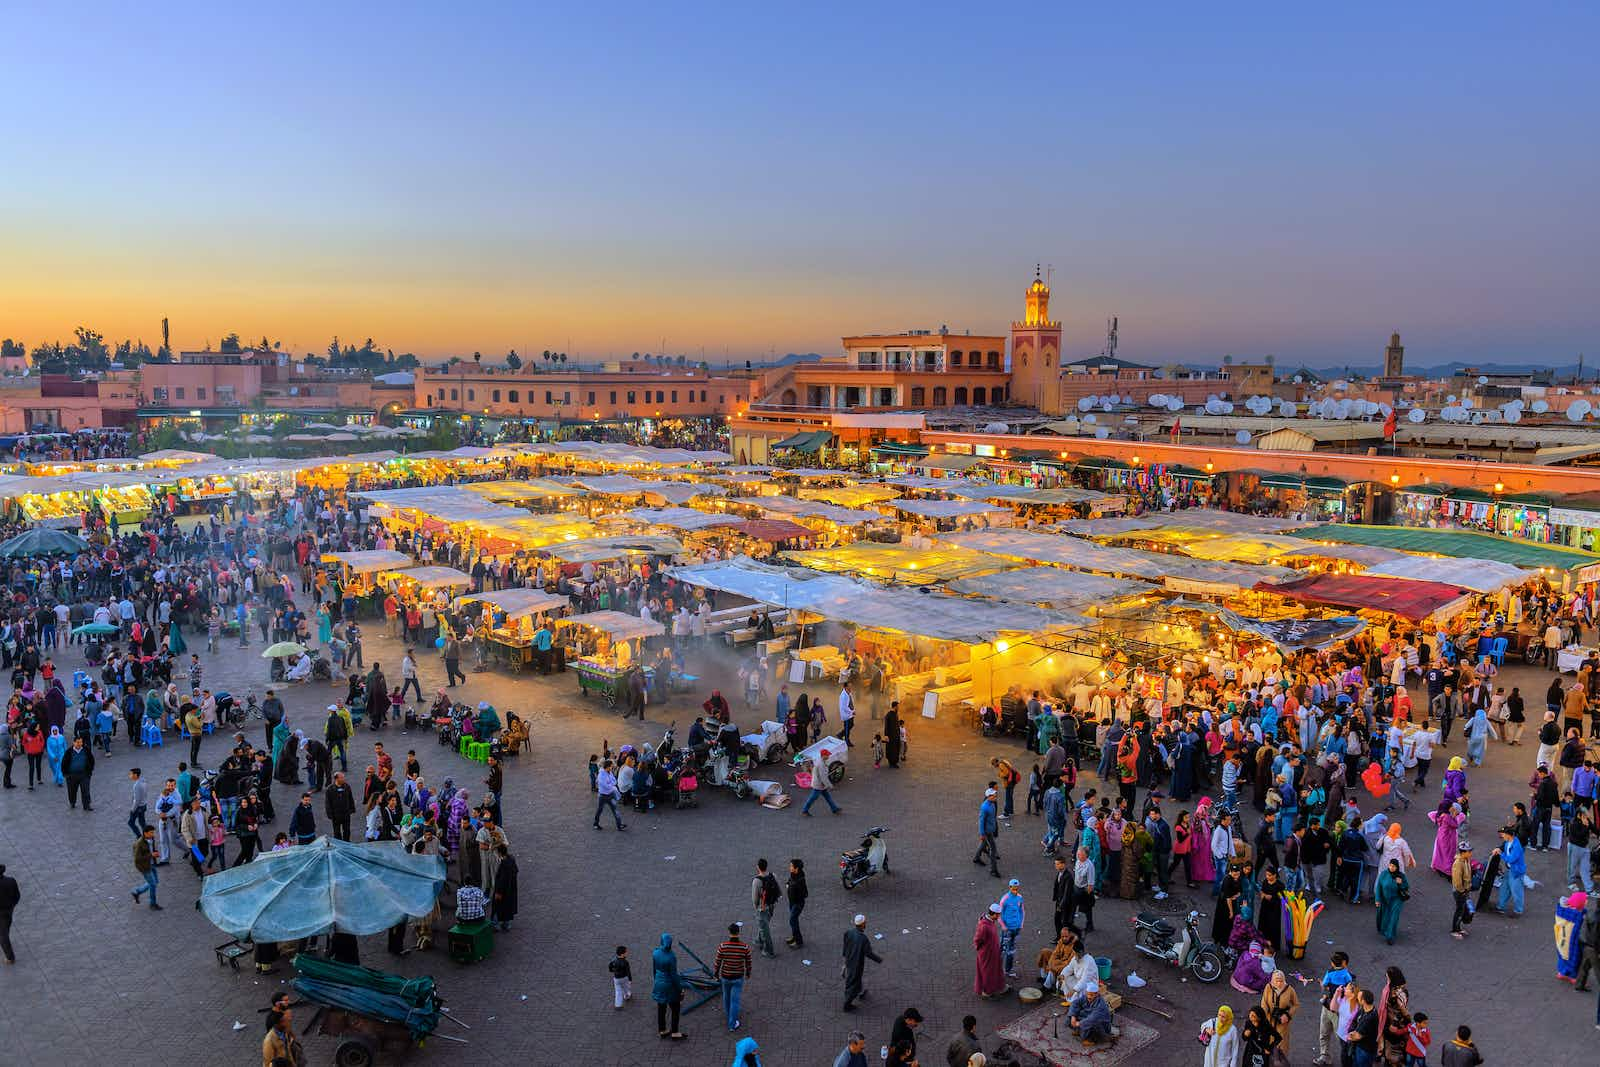 Famous Djemaa El Fna Square in early evening light, Marrakech, Morocco with the Koutoubia Mosque, Northern Africa.Nikon D3x